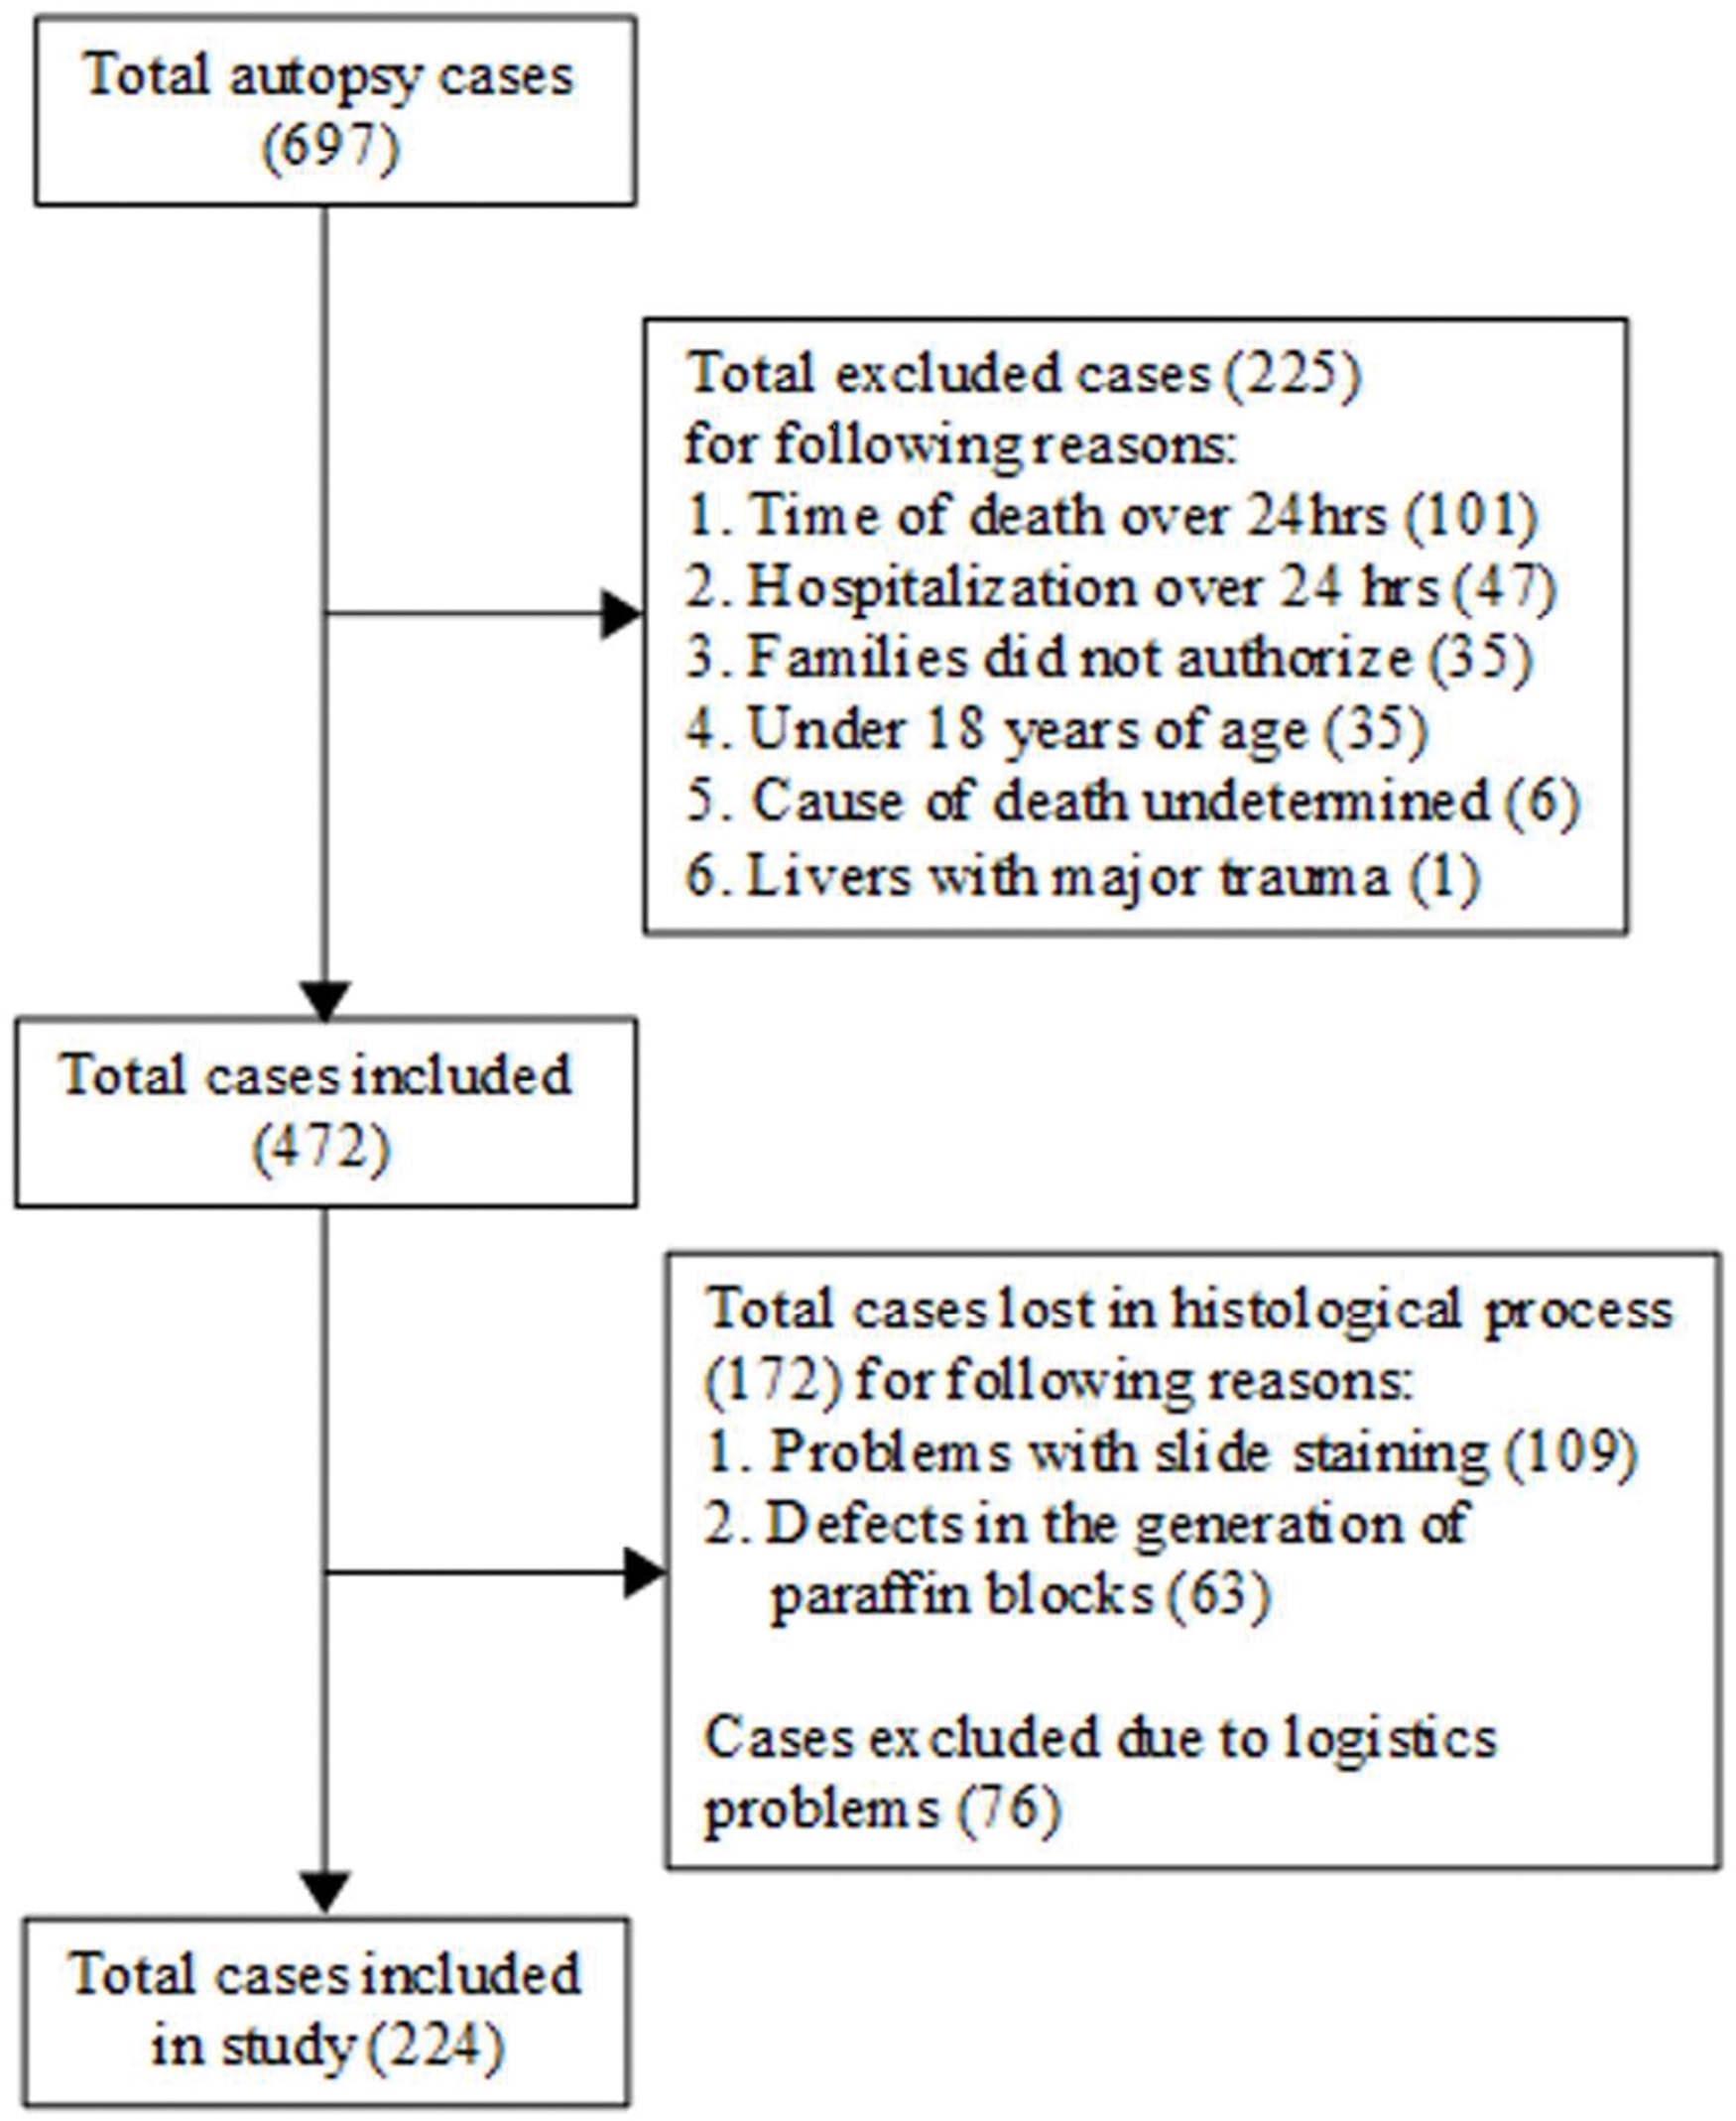 Flowchart detailing the inclusion and exclusion of cases.